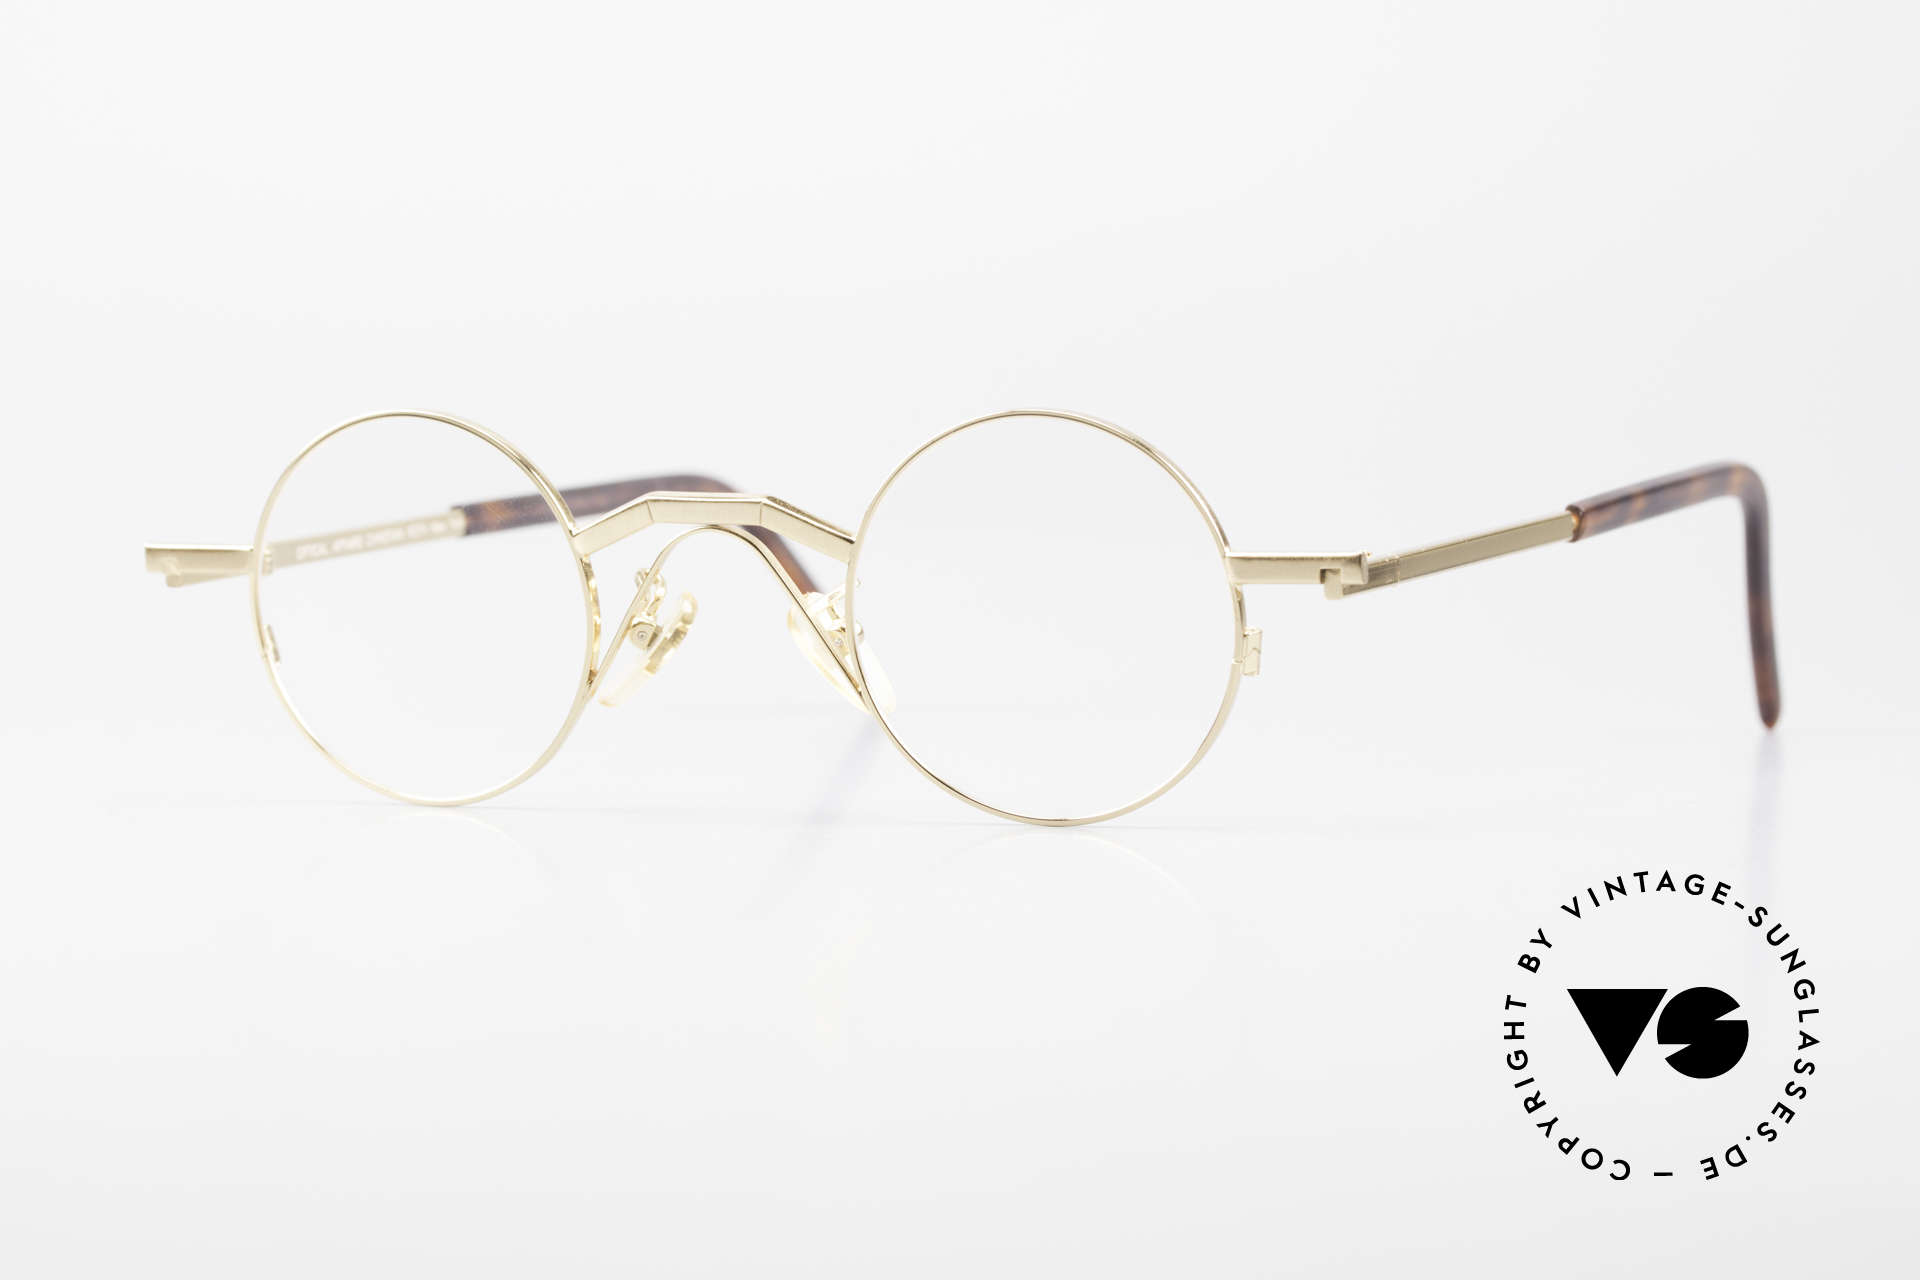 Christian Roth 2502 Round 90's Frame Bauhaus Style, Christian Roth Optical Affairs New York glasses, Made for Men and Women